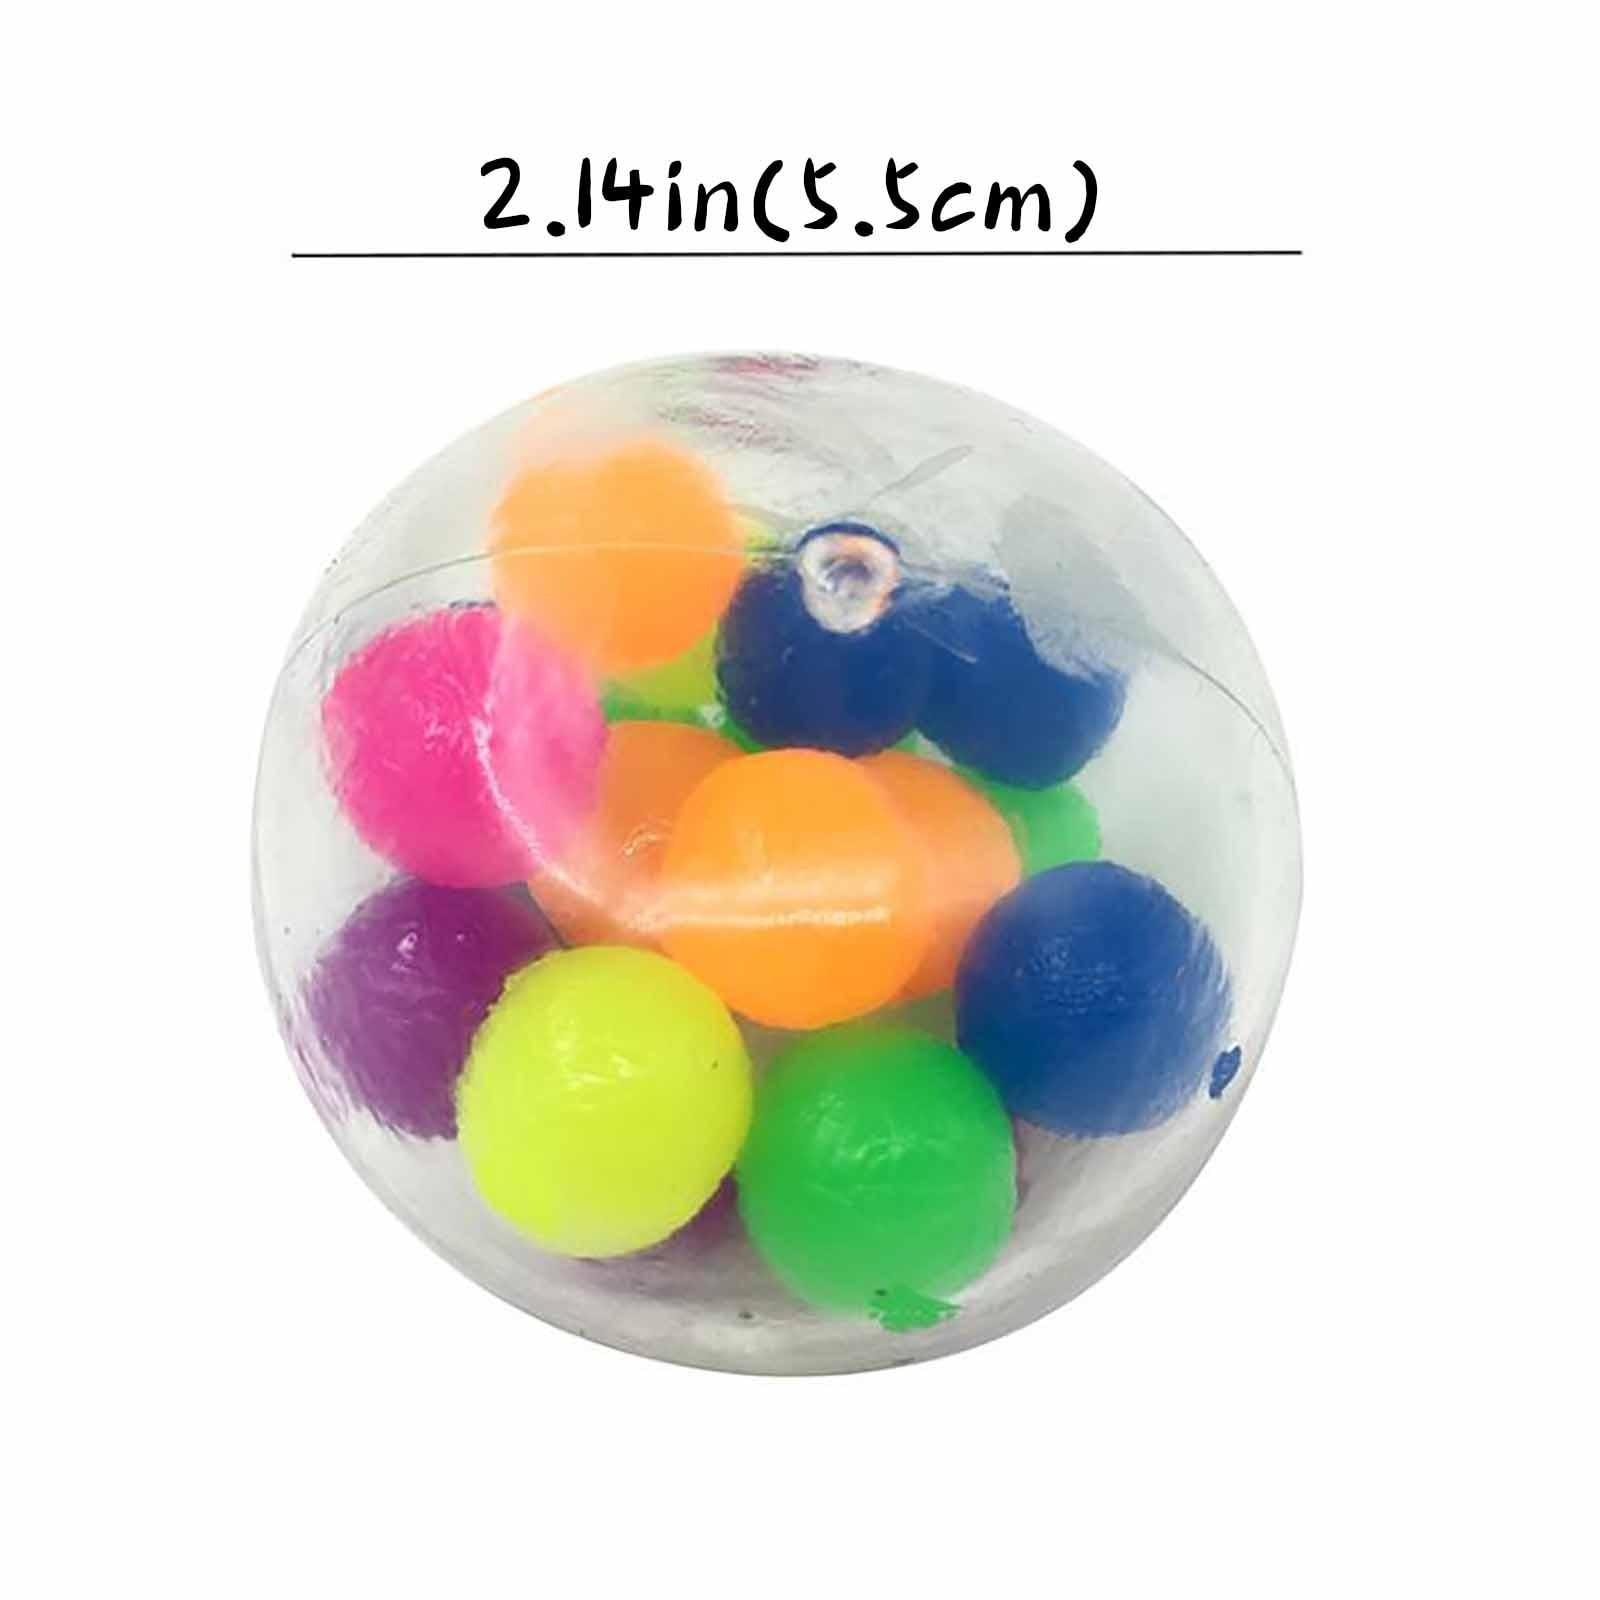 2021 New Fidget Anti Stress Toy 5pc Color Sensory Toy Office Stress Ball Pressure Ball Stress Reliever Toy(2ML)zabawki antysreso enlarge